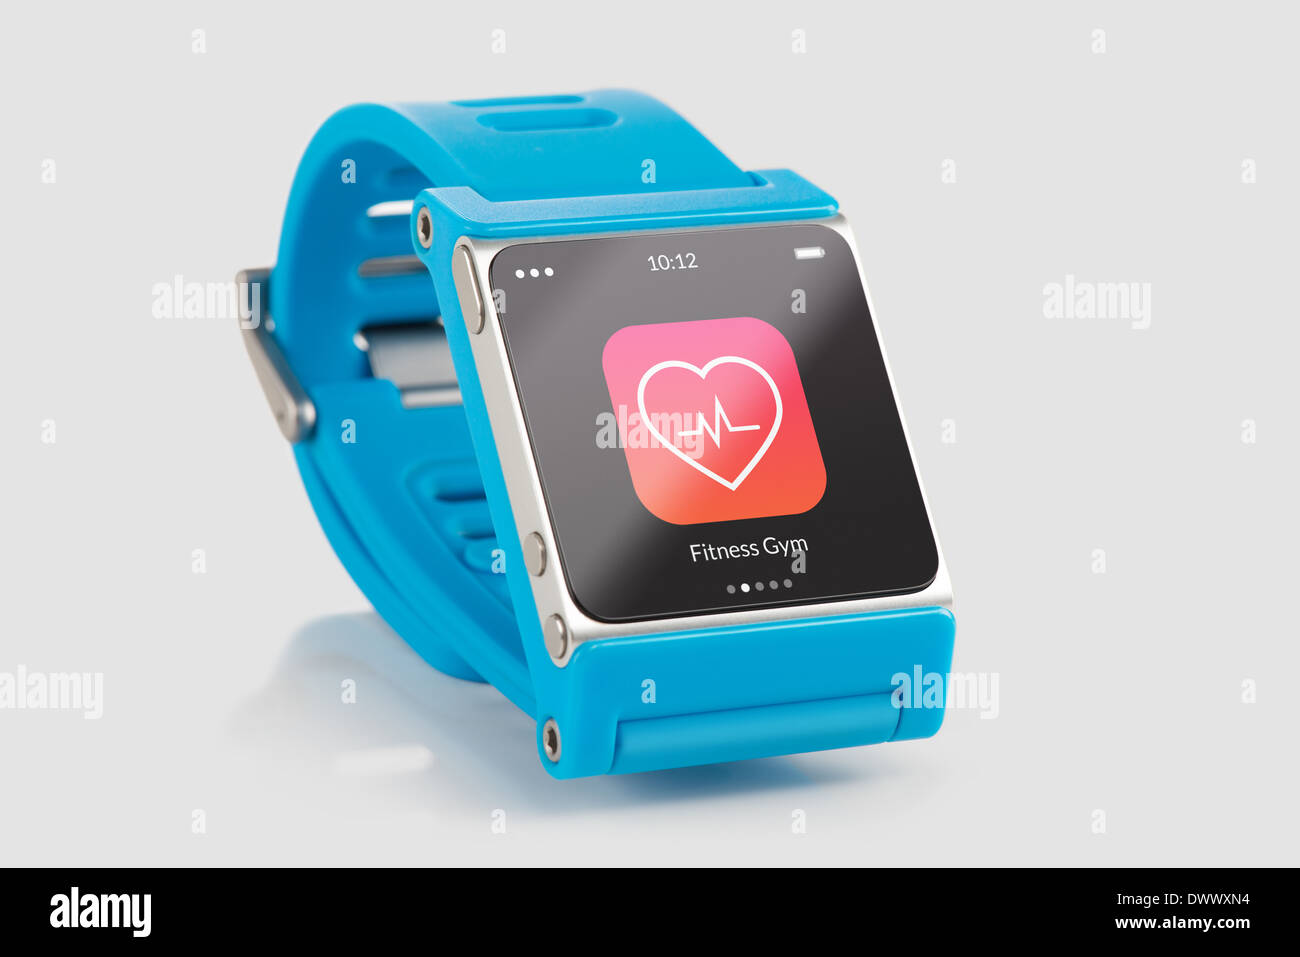 Close up blue smart watch with fitness app icon on the screen - Stock Image